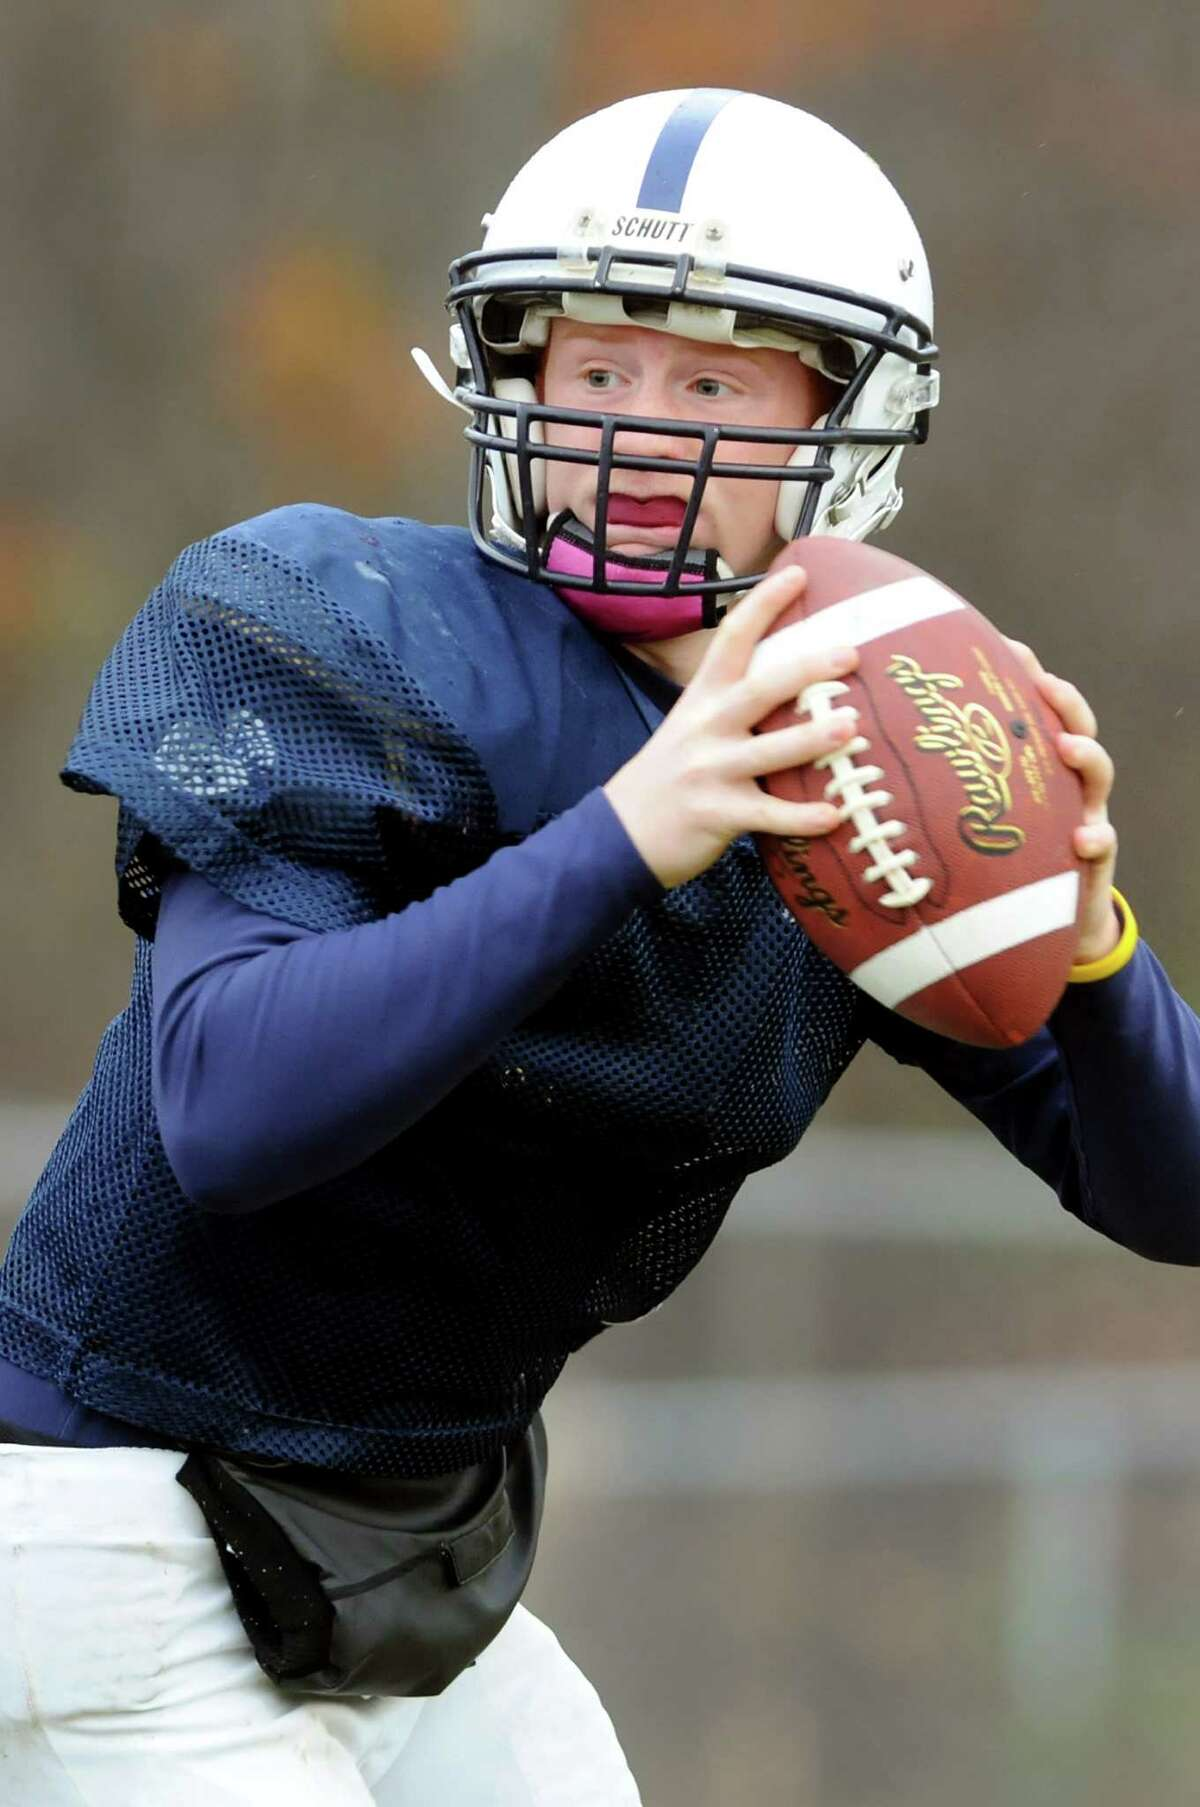 Quarterback Steven Harwood looks to pass during football practice on Thursday, Nov. 1, 2012, at Rensselaer High in Rensselaer, N.Y. (Cindy Schultz / Times Union)